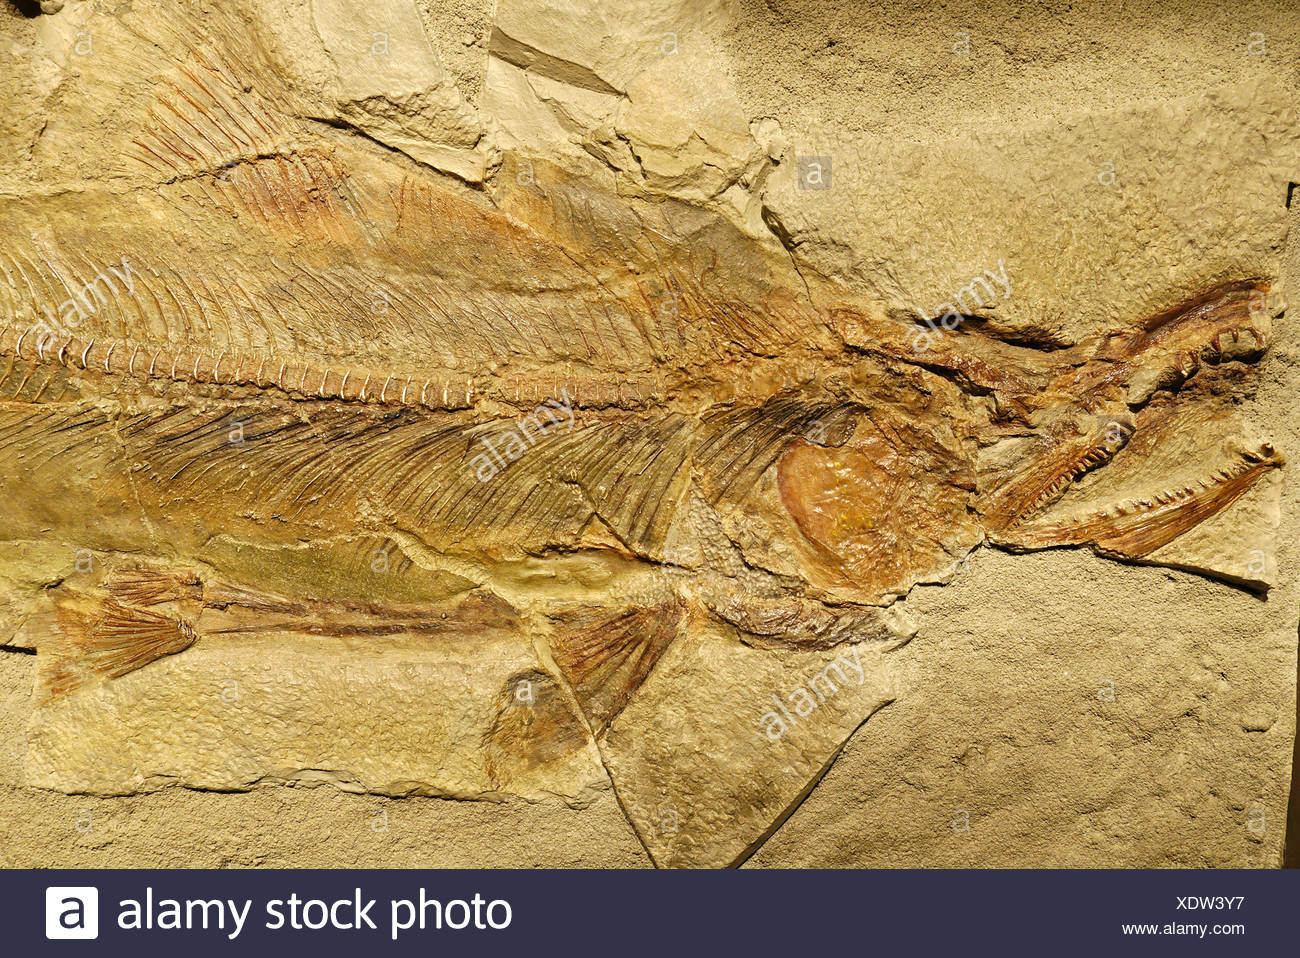 Primeval salmon, fossil or petrifaction - Stock Image